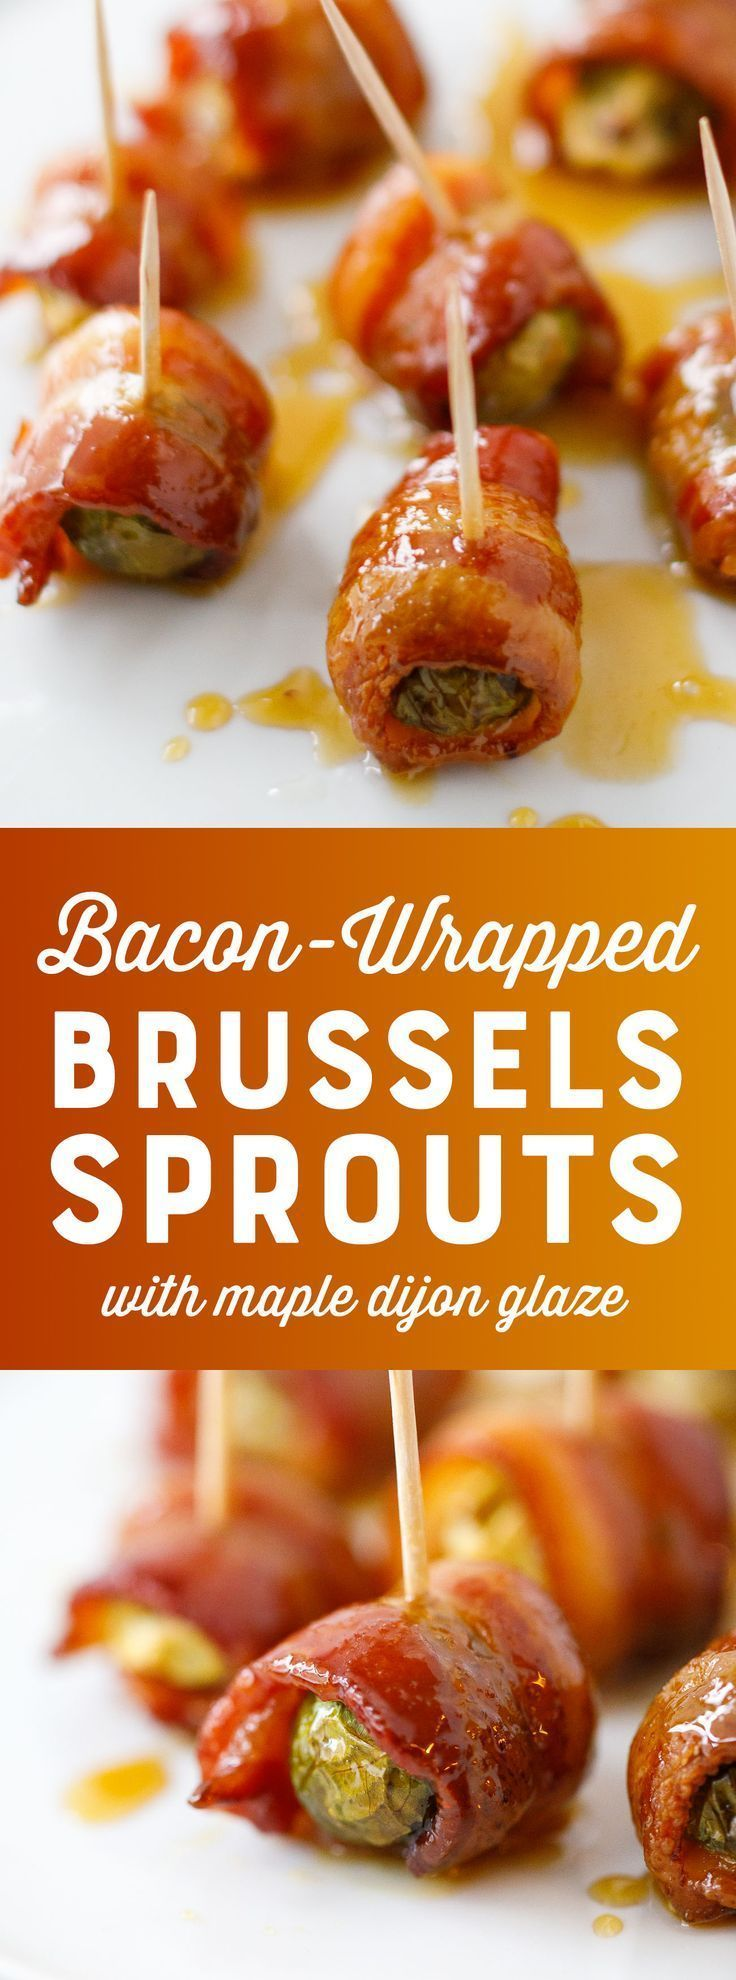 Bacon-Wrapped Brussels Sprouts with Maple Dijon Glaze Appetizer Bacon Wrapped Brussels Sprouts with